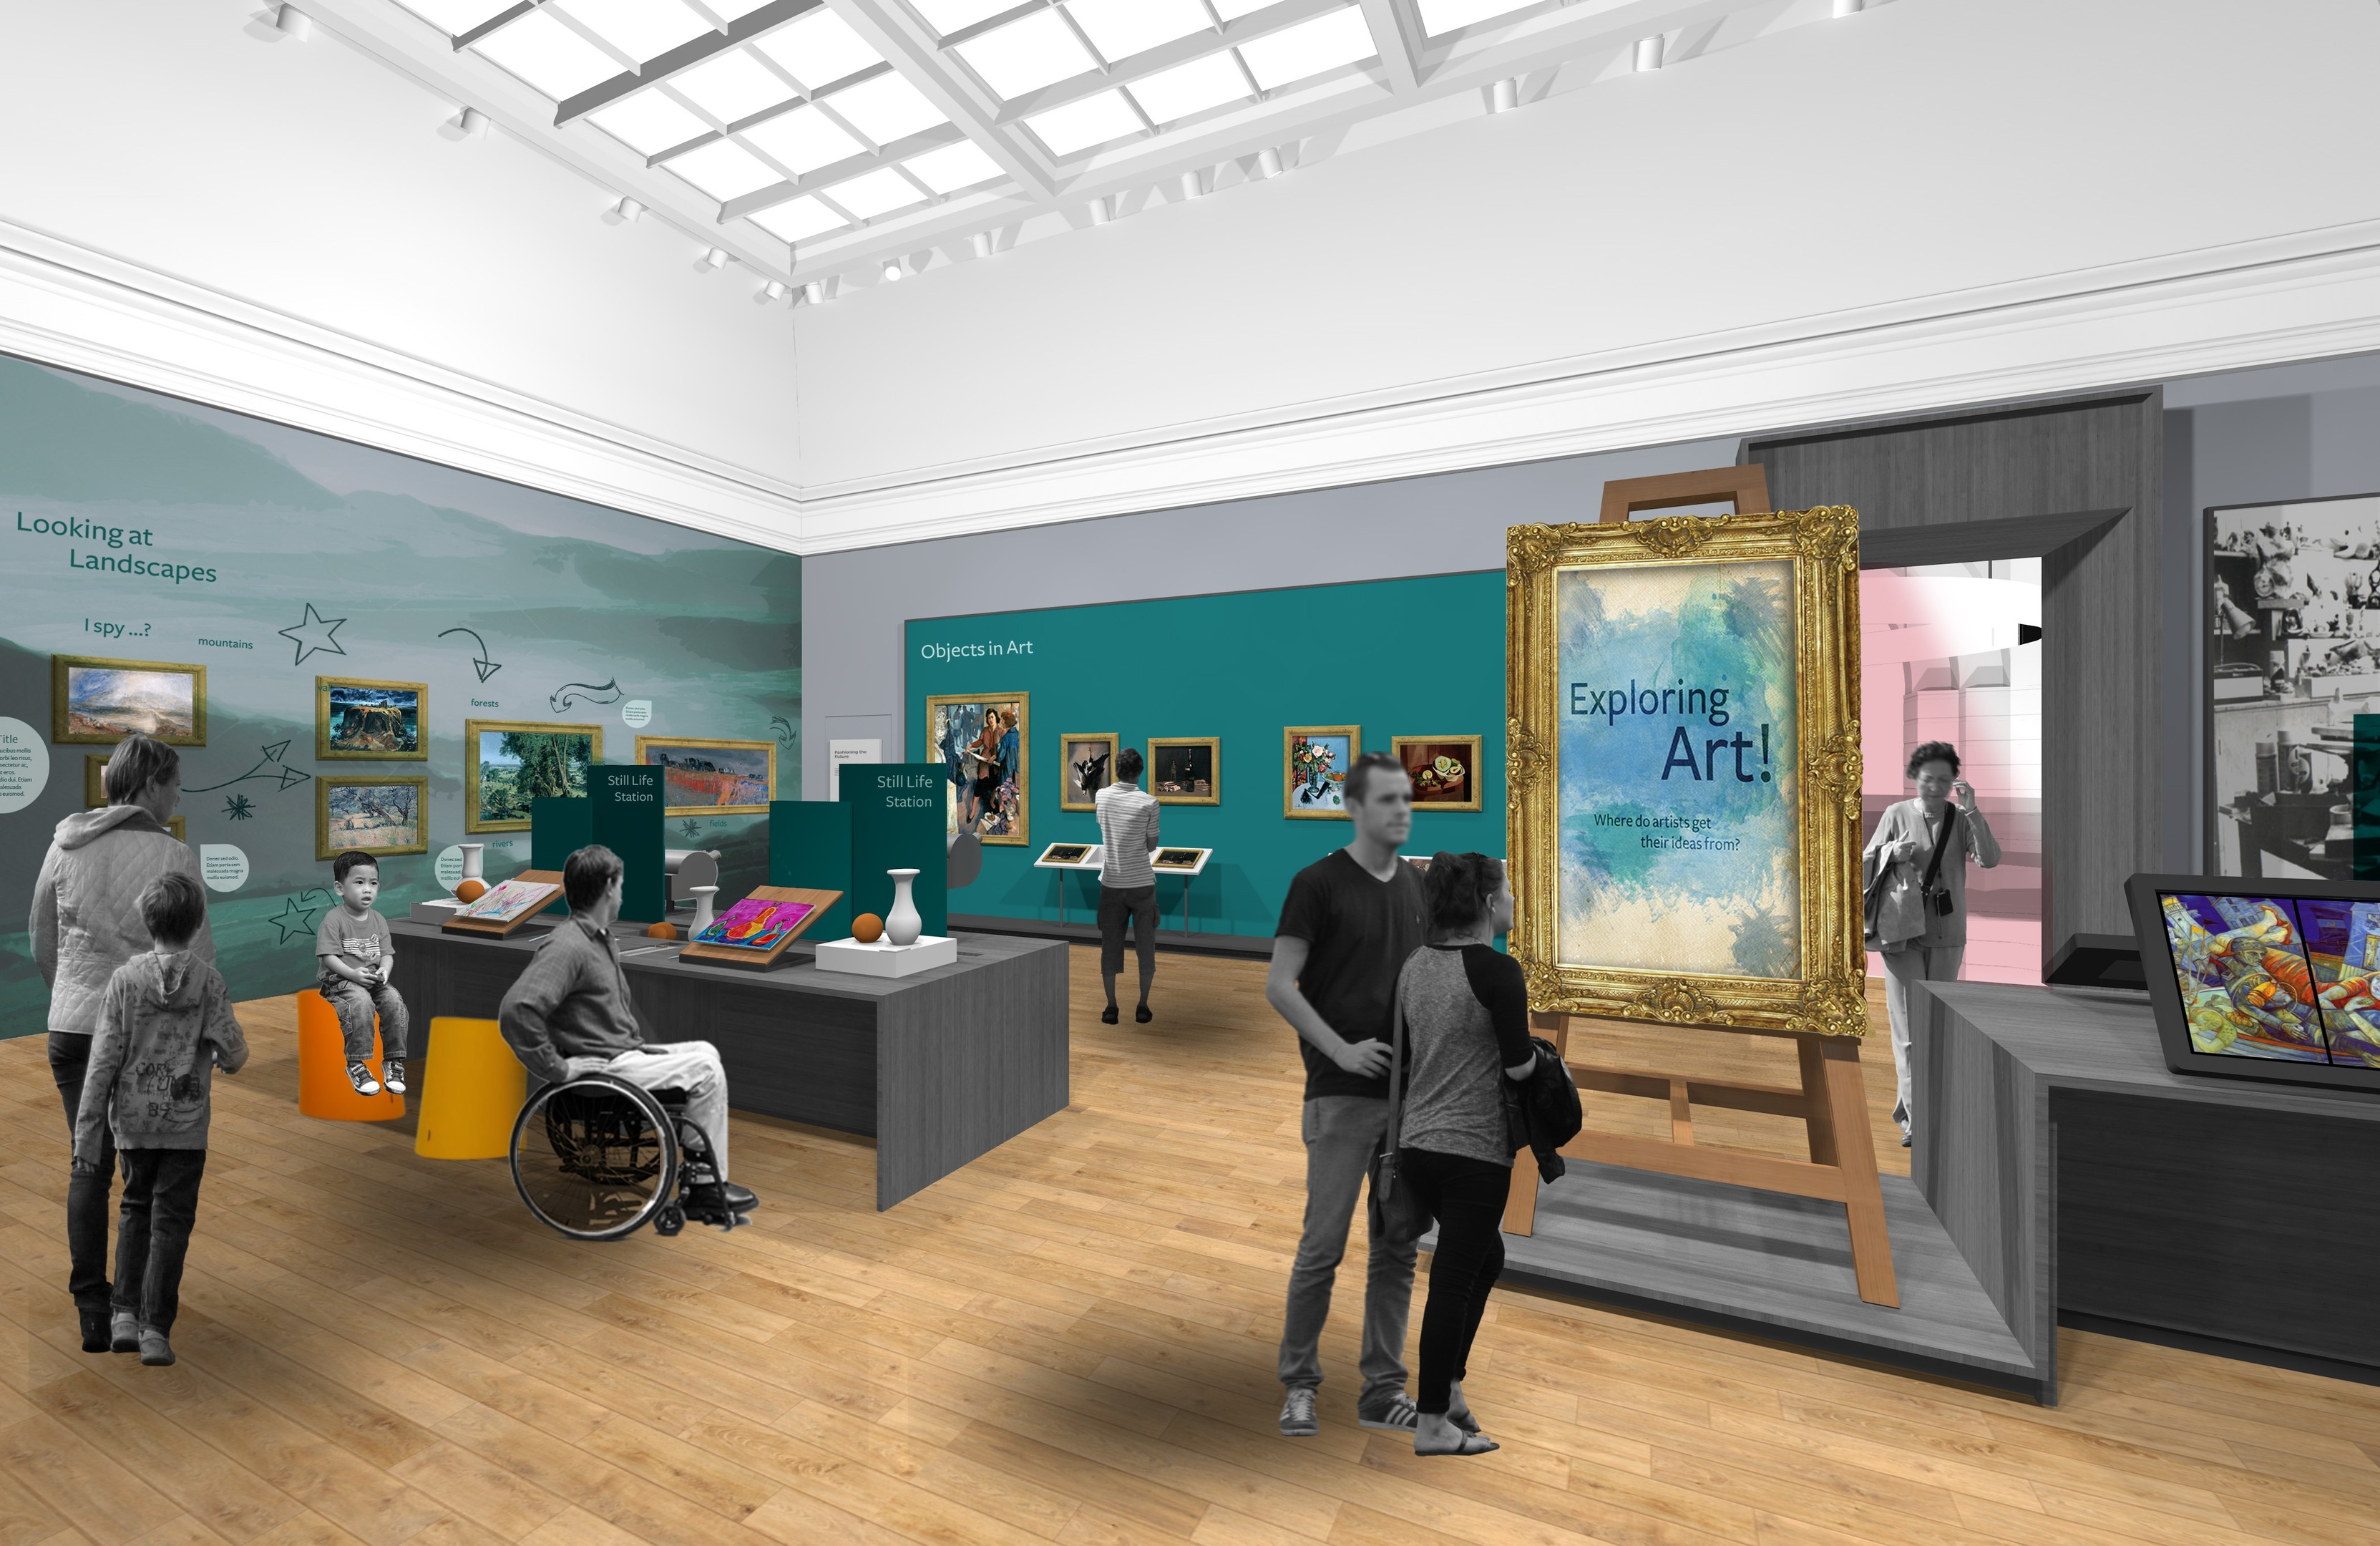 Artist's impressions of how the gallery could look.